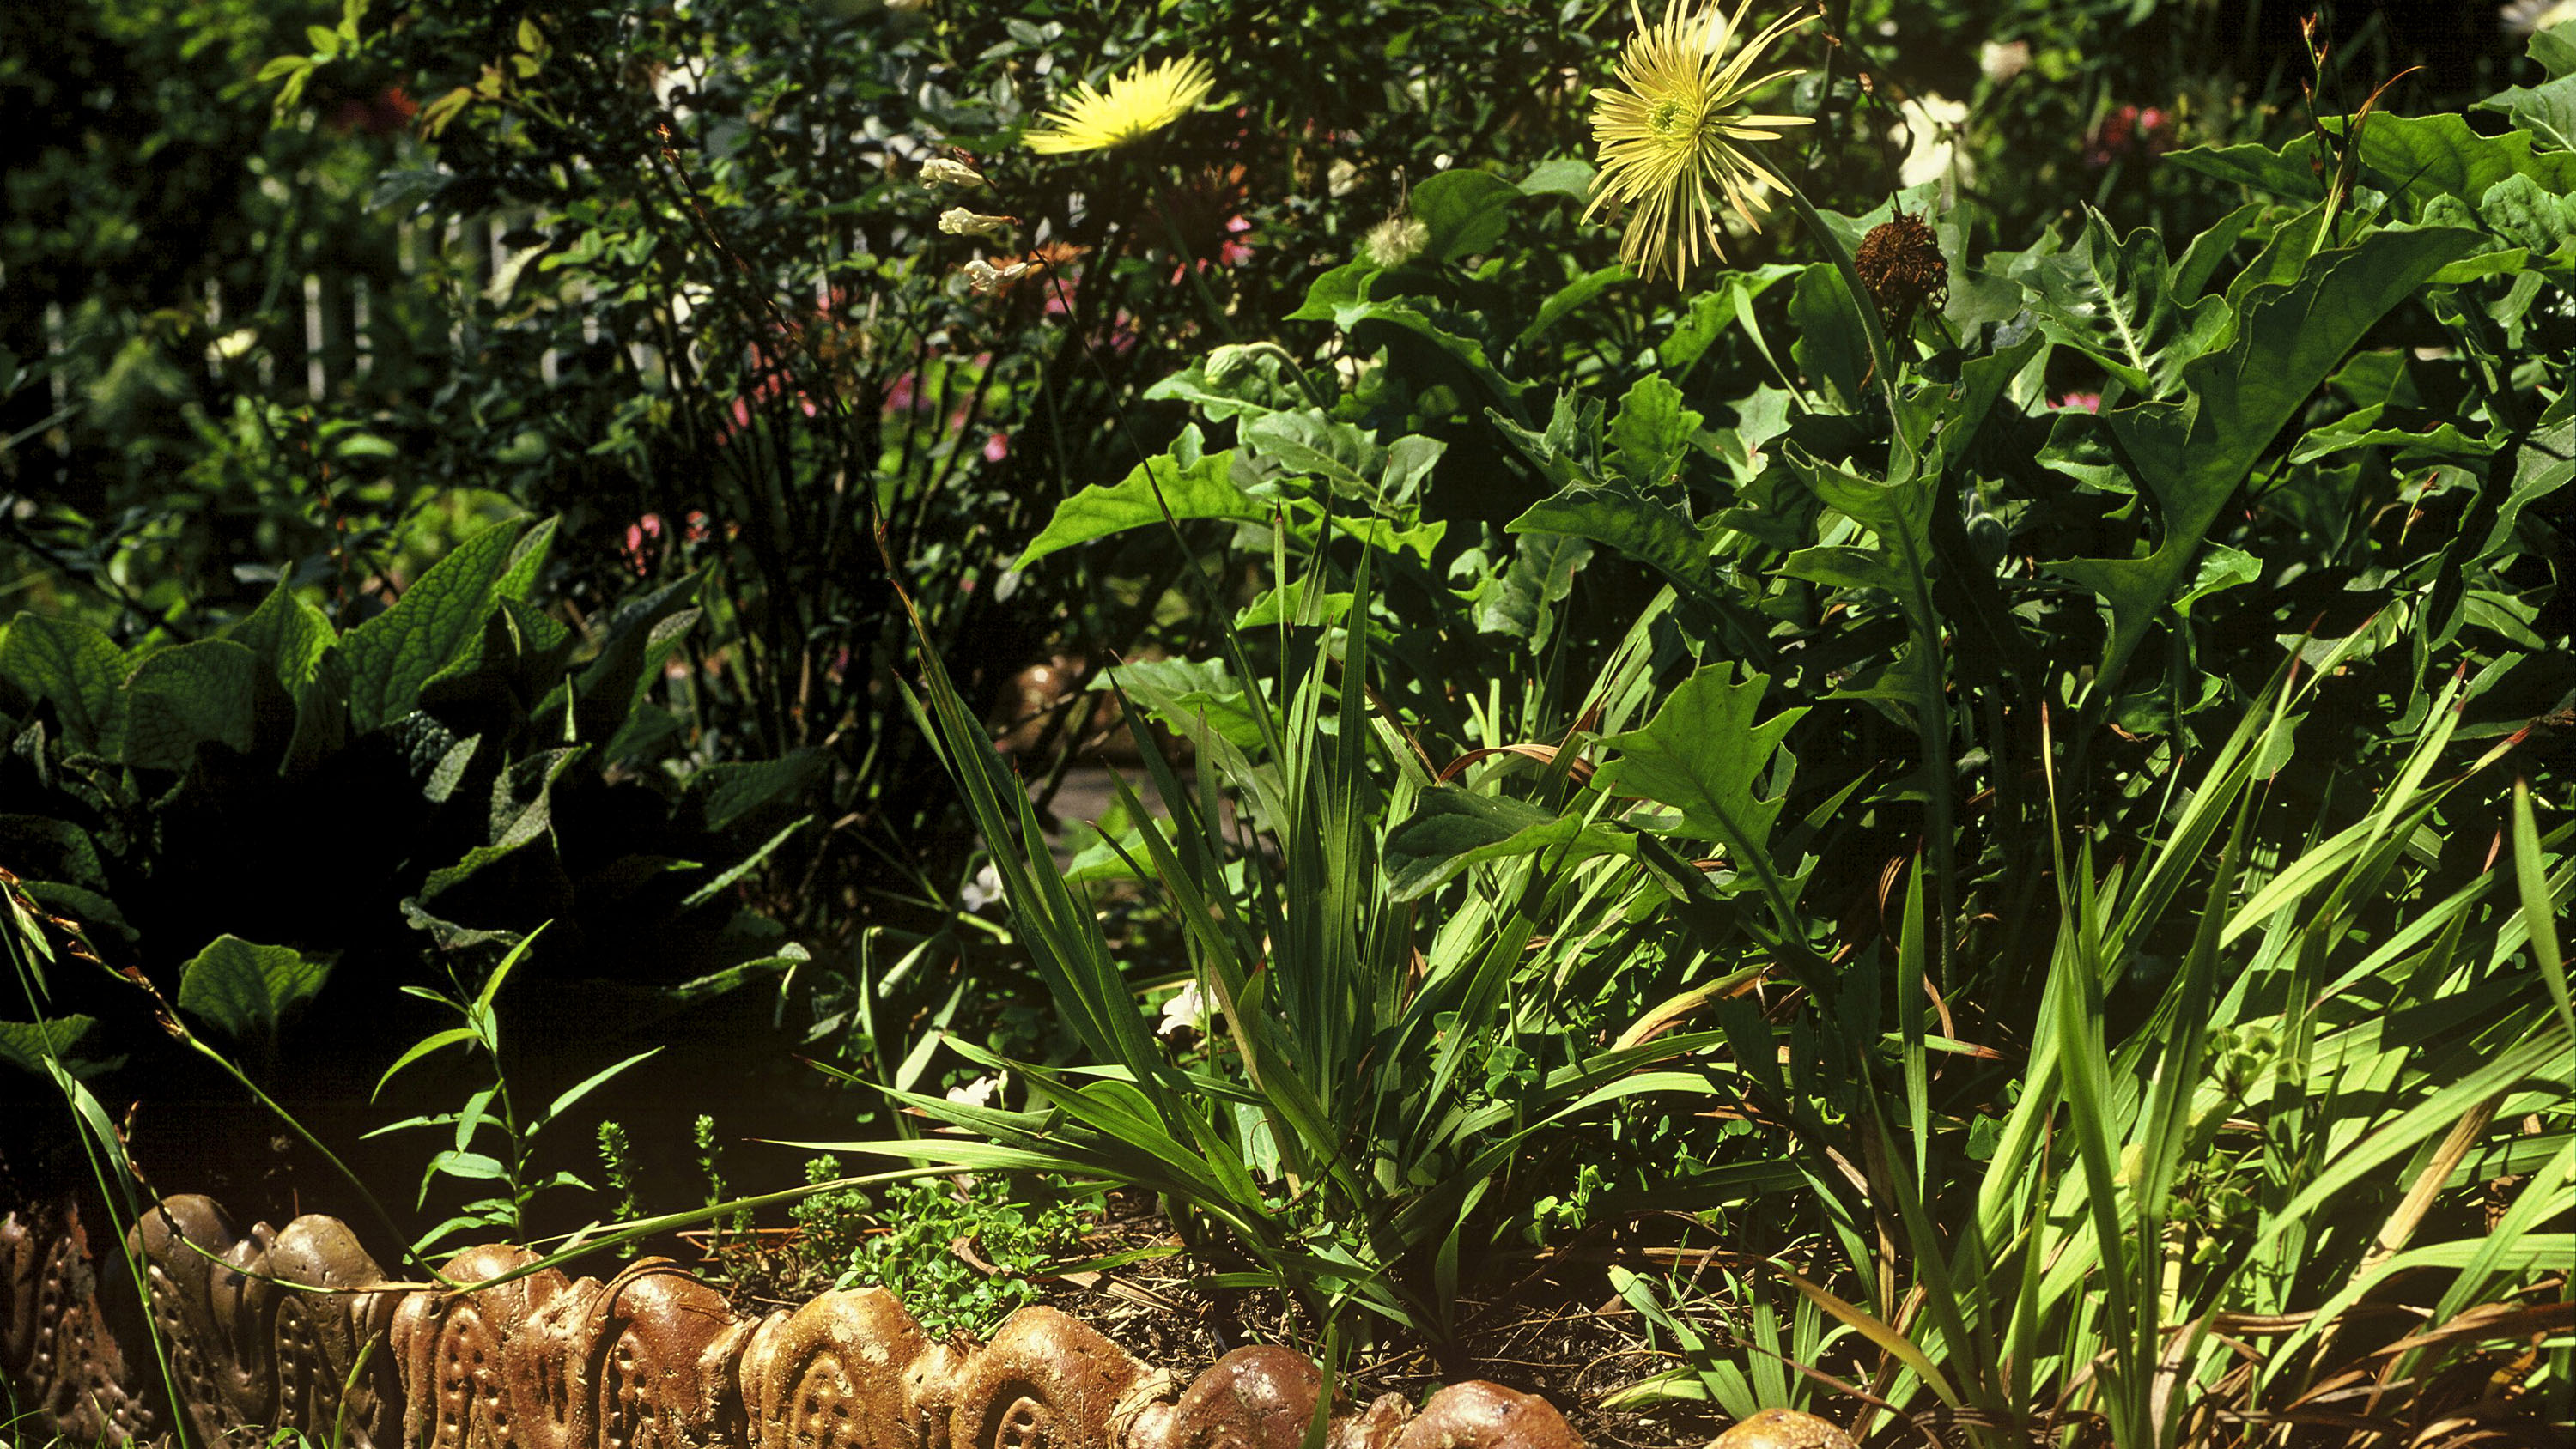 Close up view of a garden with ceramic edging tiles visible in one corner with flowering plants and shrubs in the garden bed.